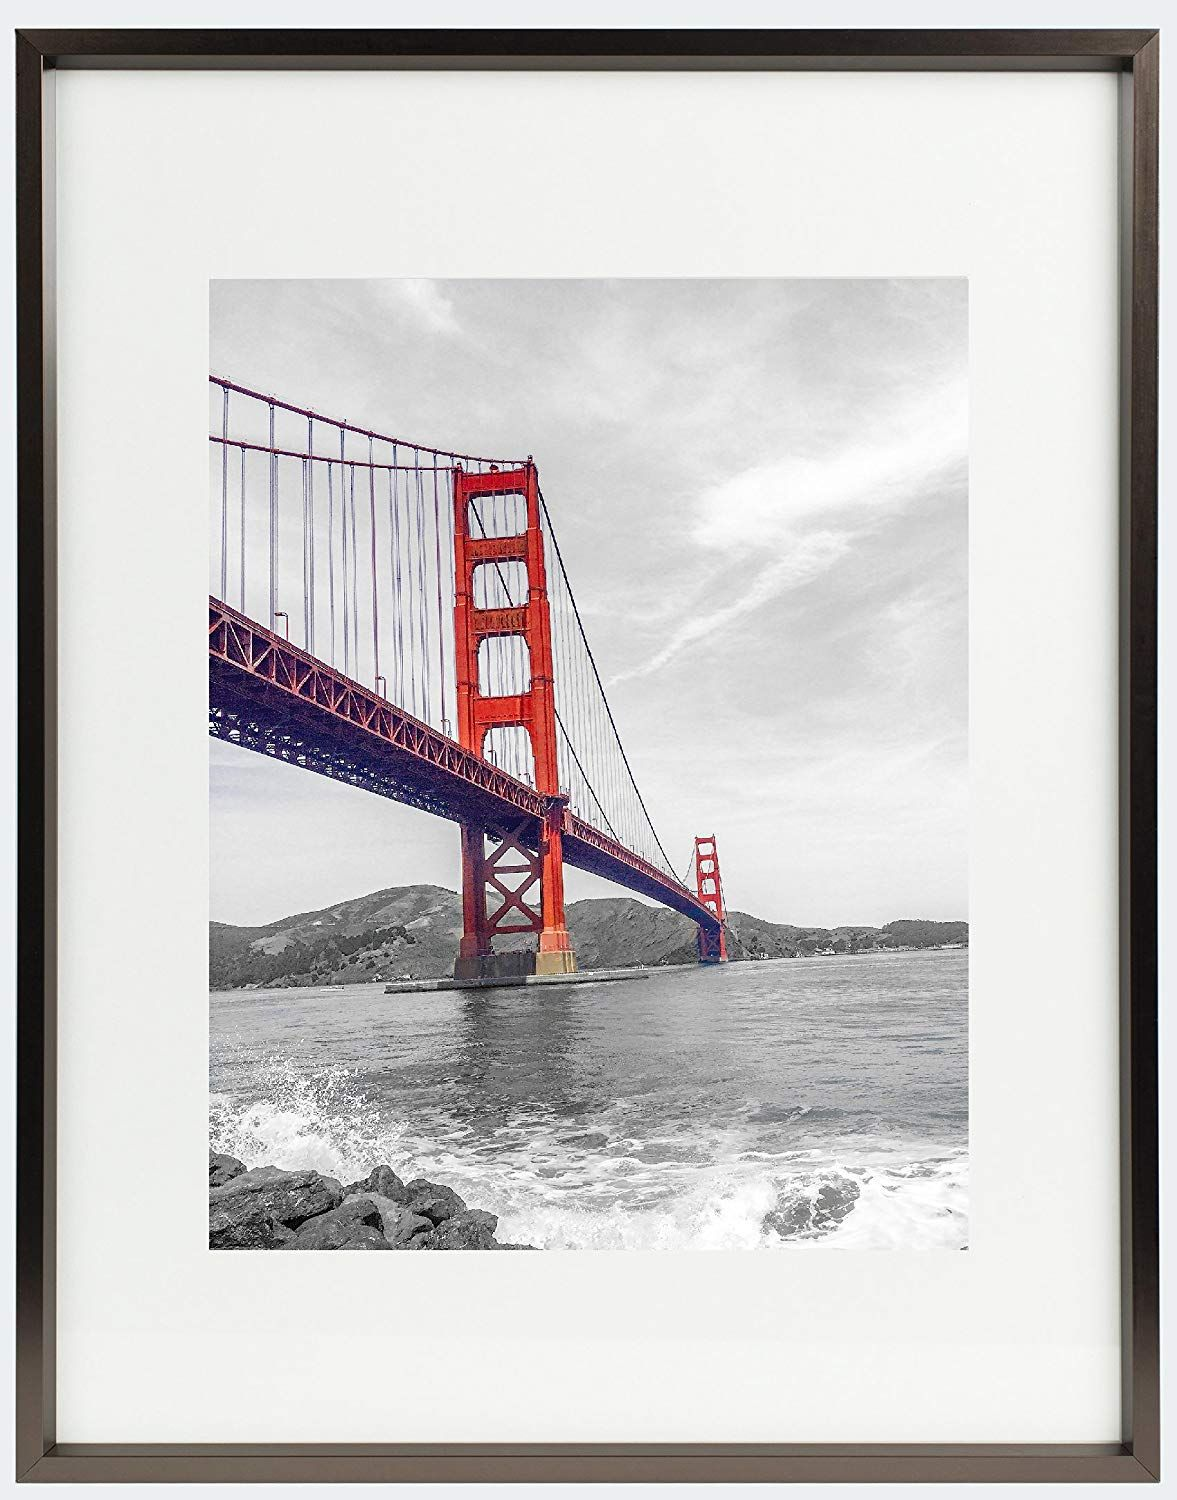 Amazon Com Frametory 11x14 Aluminum Black Photo Frame With Ivory Color Mat For 8x10 Picture Real Metal Picture Frames Black Photo Frames Gold Photo Frames